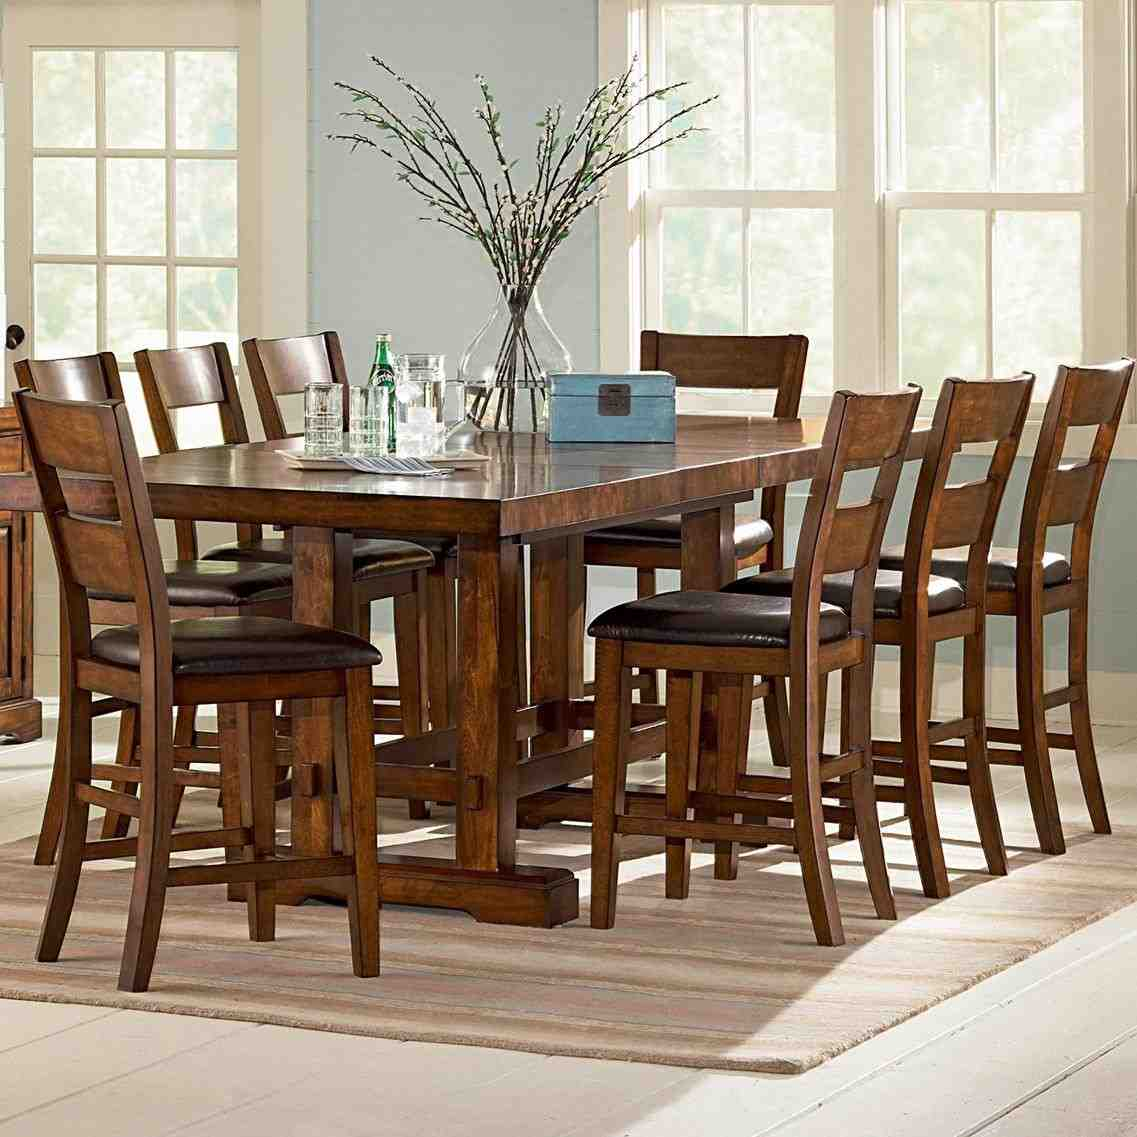 High Top Dining Table With 8 Chairs Home Furniture Design